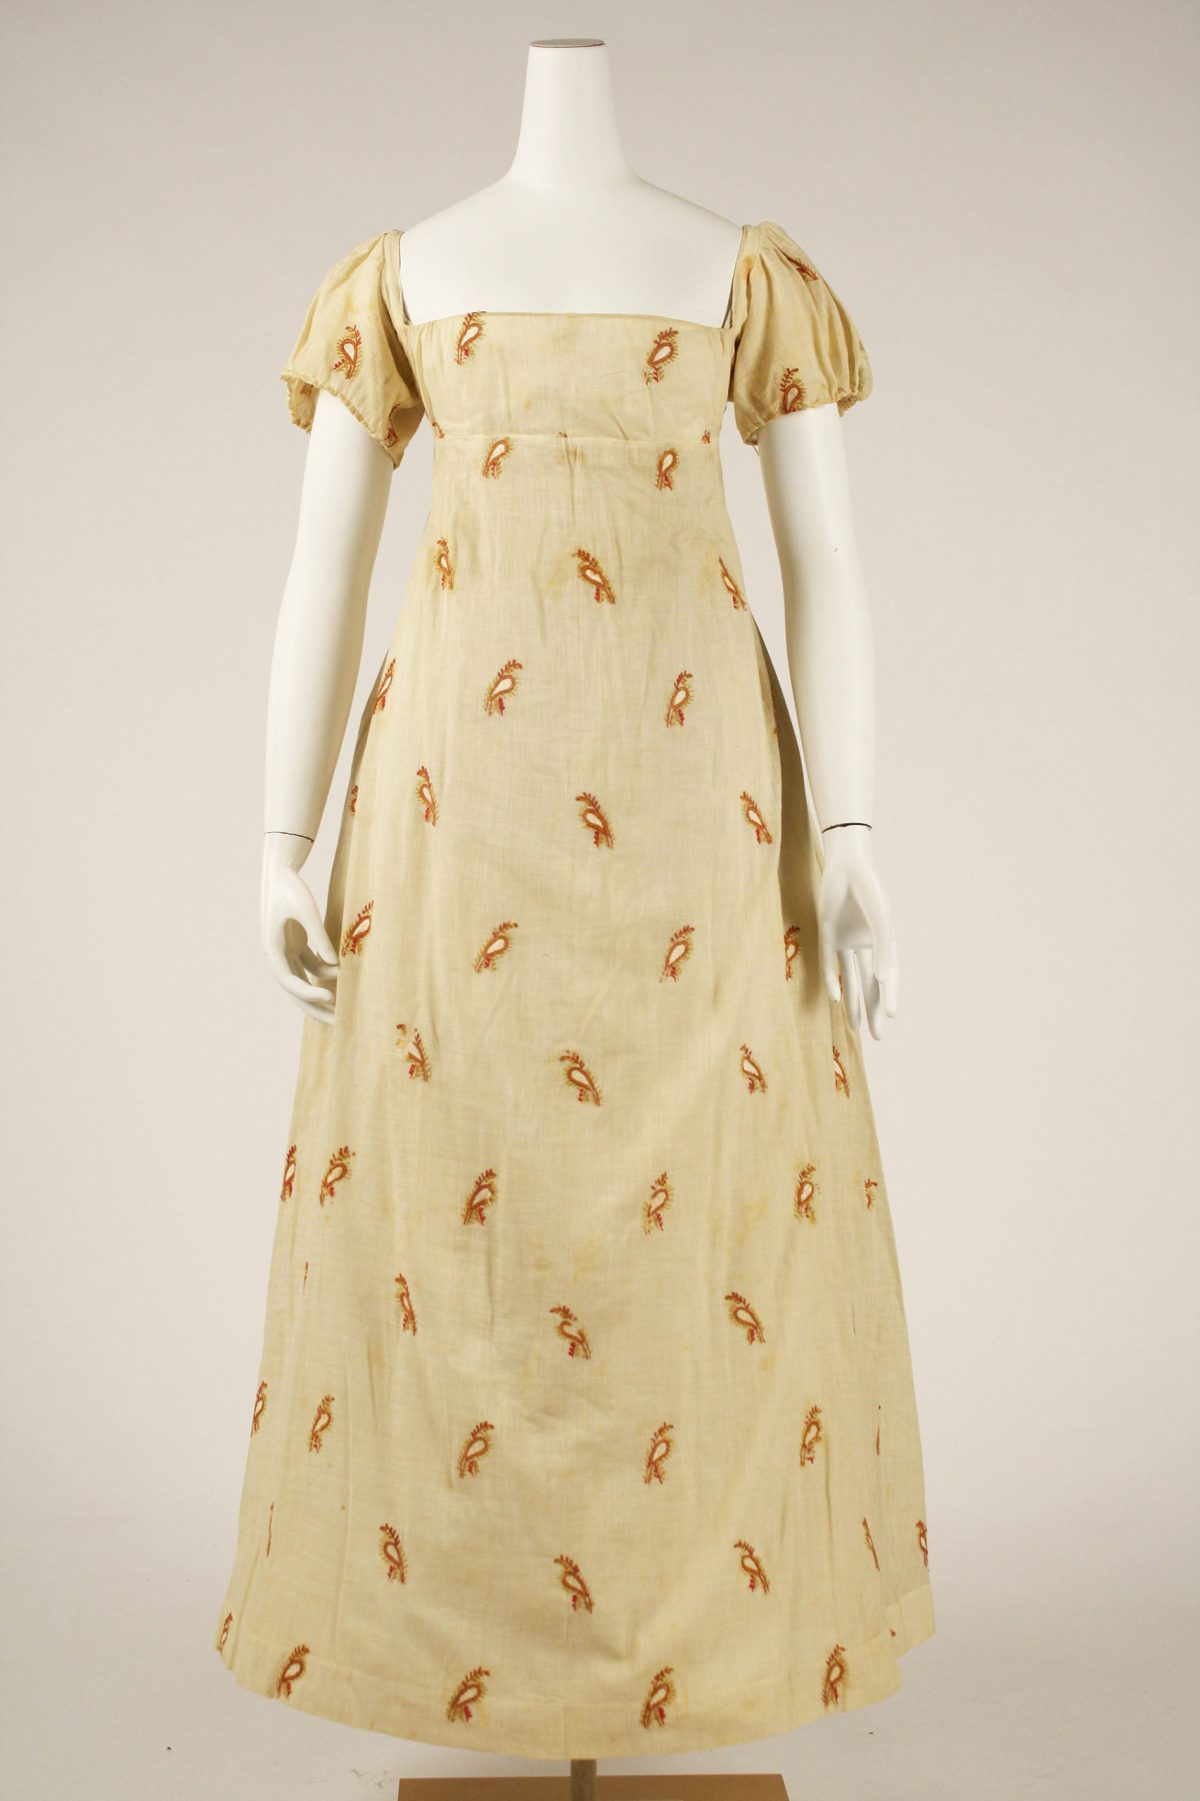 A high-waisted American gown from 1810 with a boteh/paisley design -- simple printed cotton. From the Met Museum, public domain.